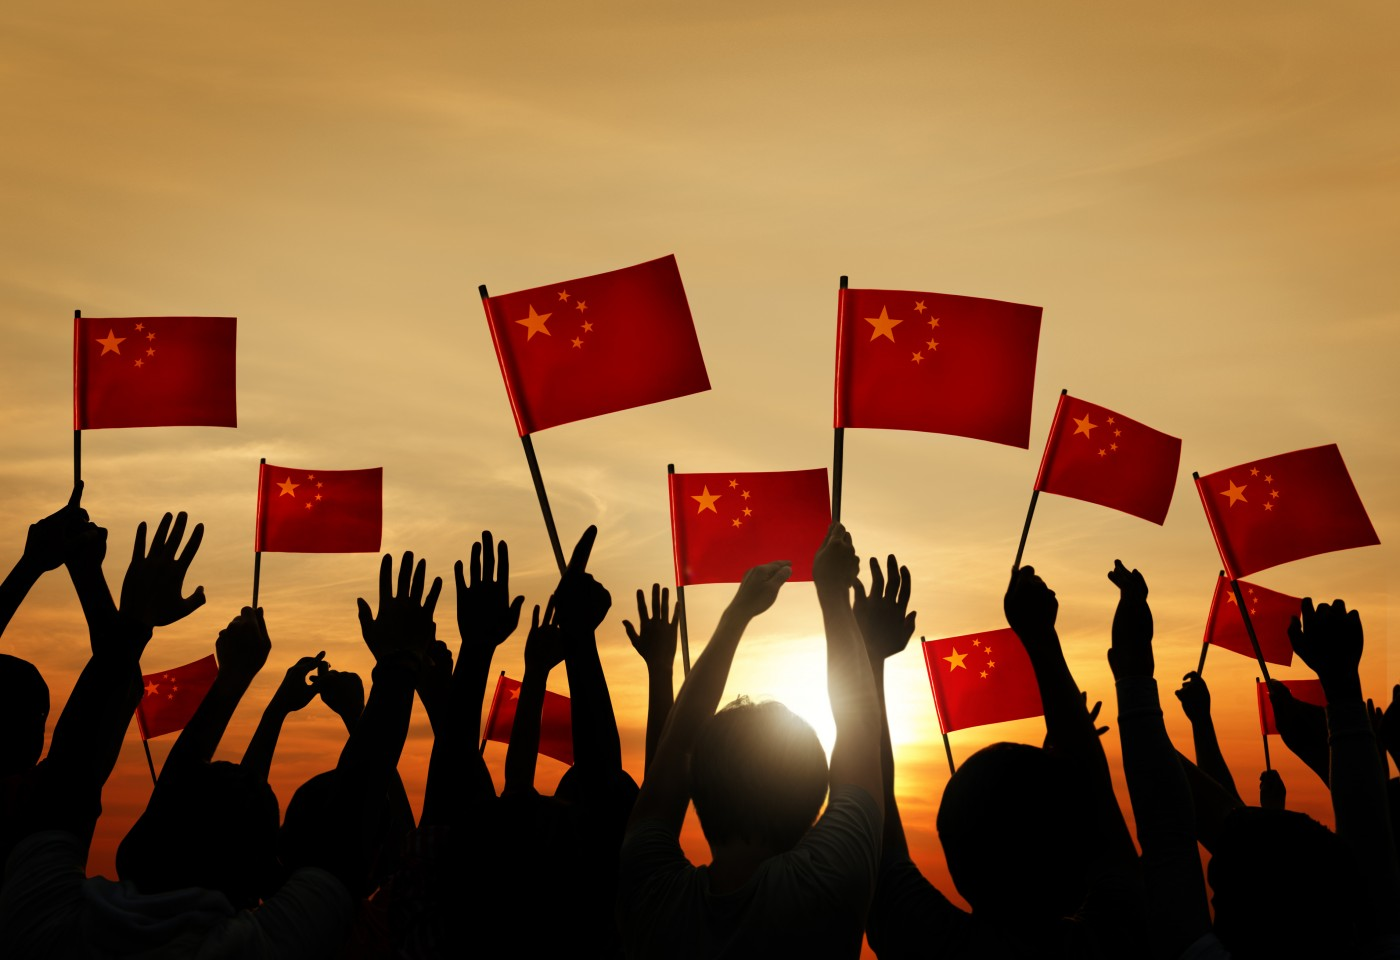 It should therefore come as no surprise that the Chinese government can count on great support from the population. Around 90 percent say their country is heading in the right direction. (iStock)